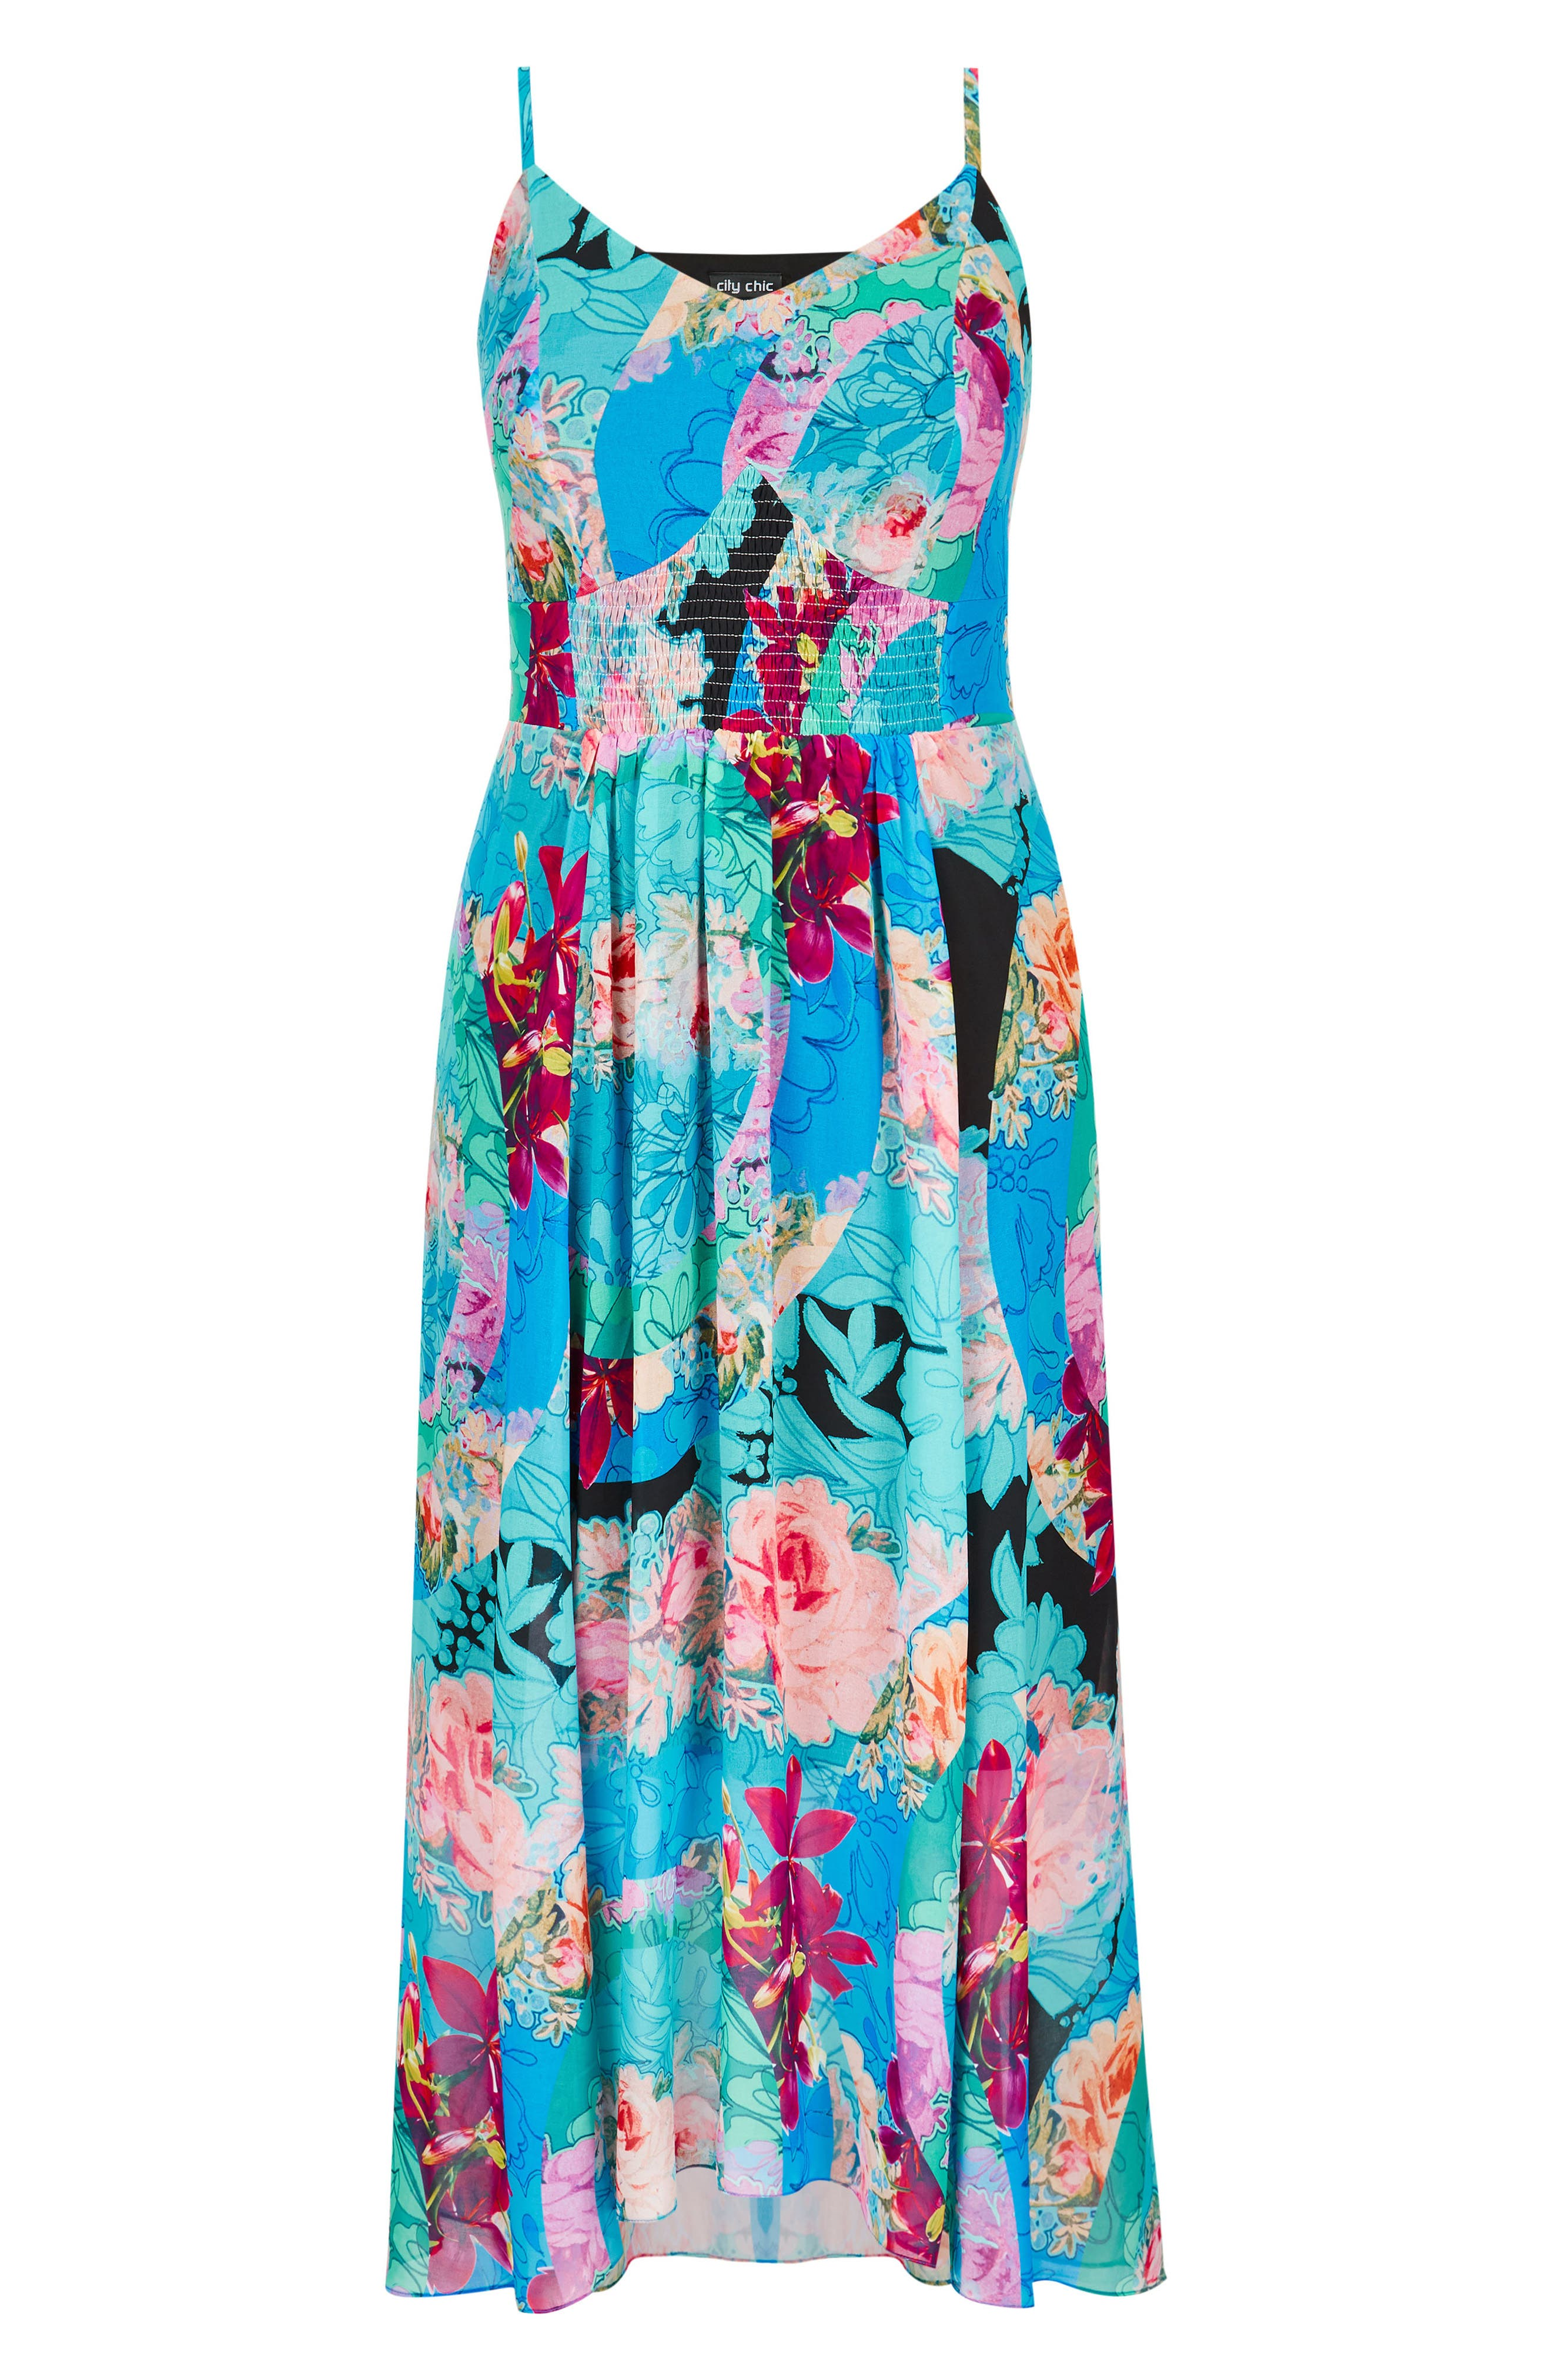 Looking Glass Maxi Dress,                             Alternate thumbnail 3, color,                             Looking Glass